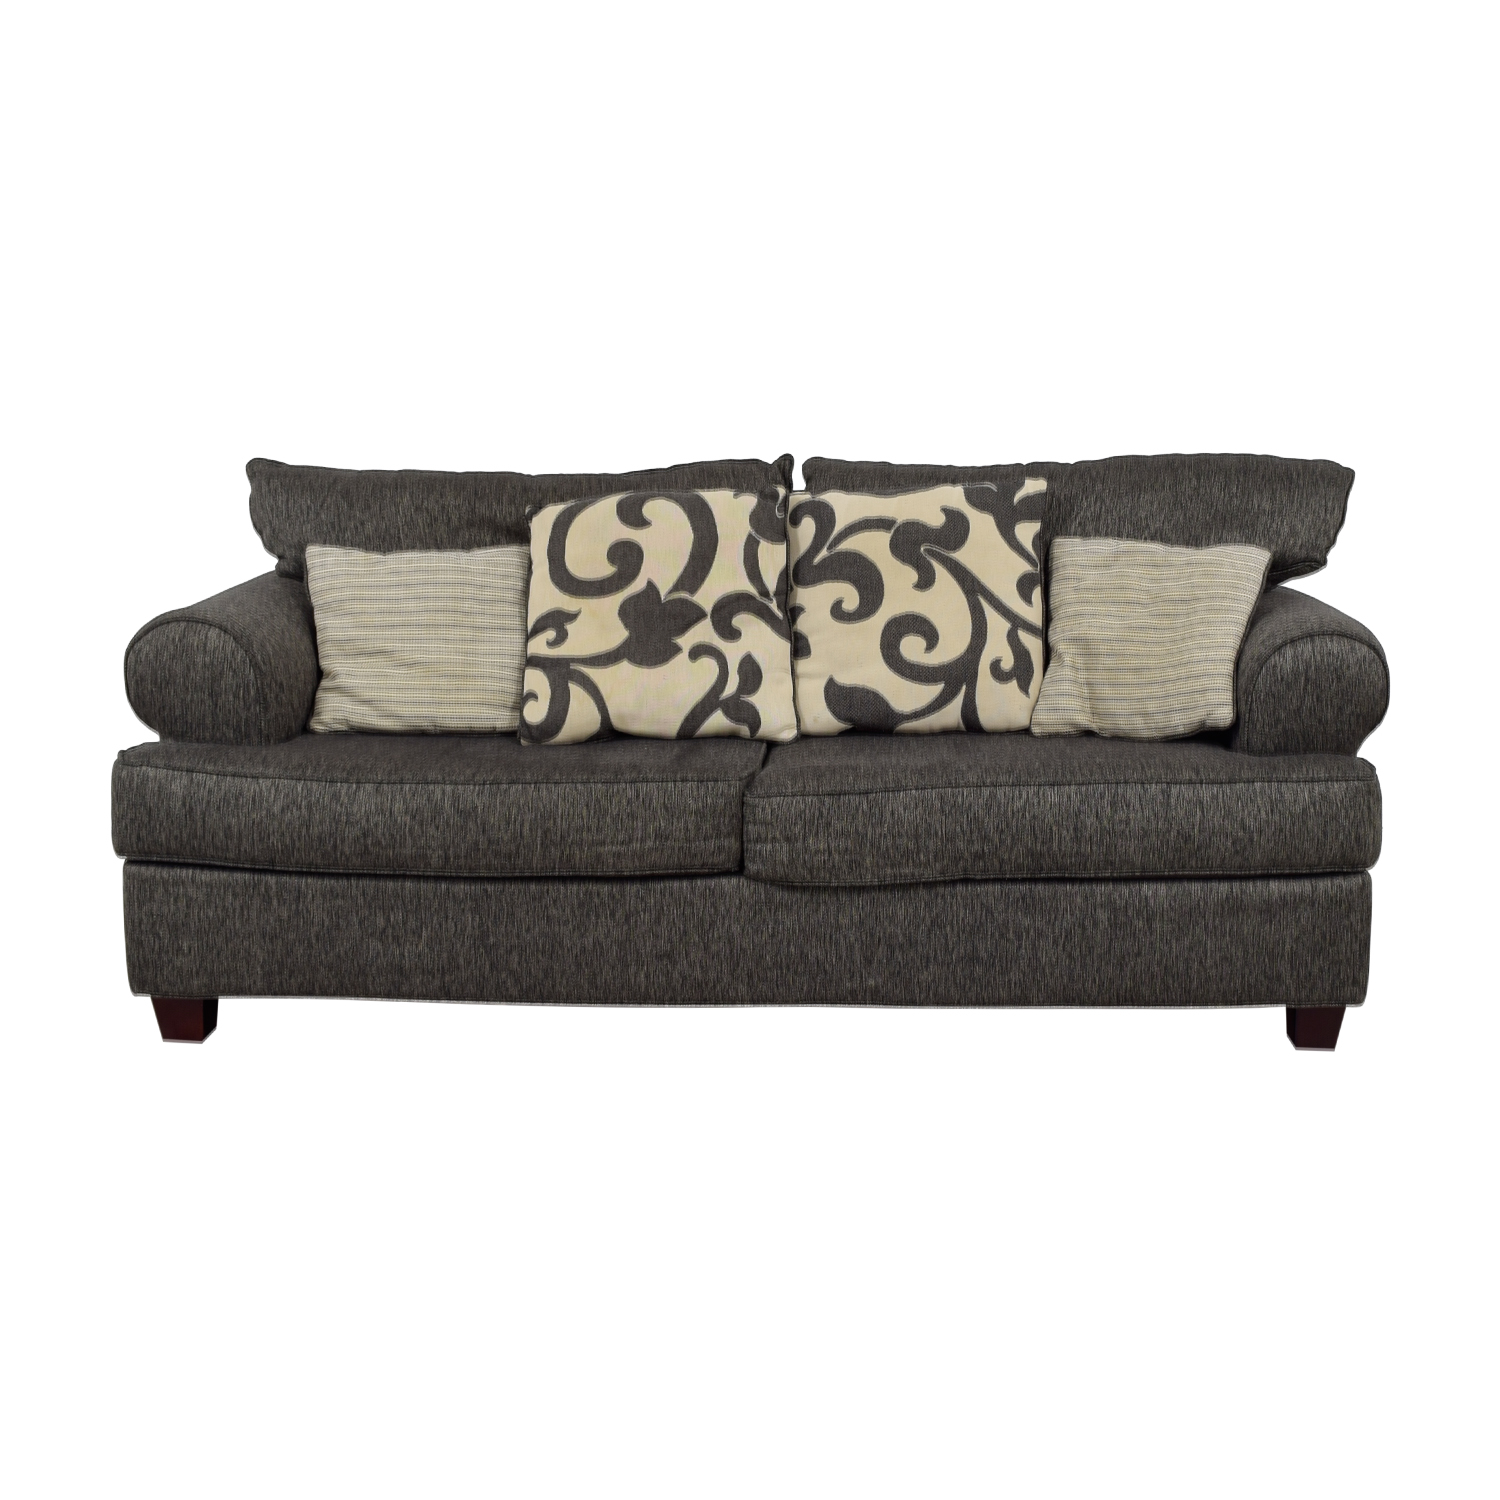 Bob's Furniture Big Grey Two-Seater Sofa Bob's Furniture